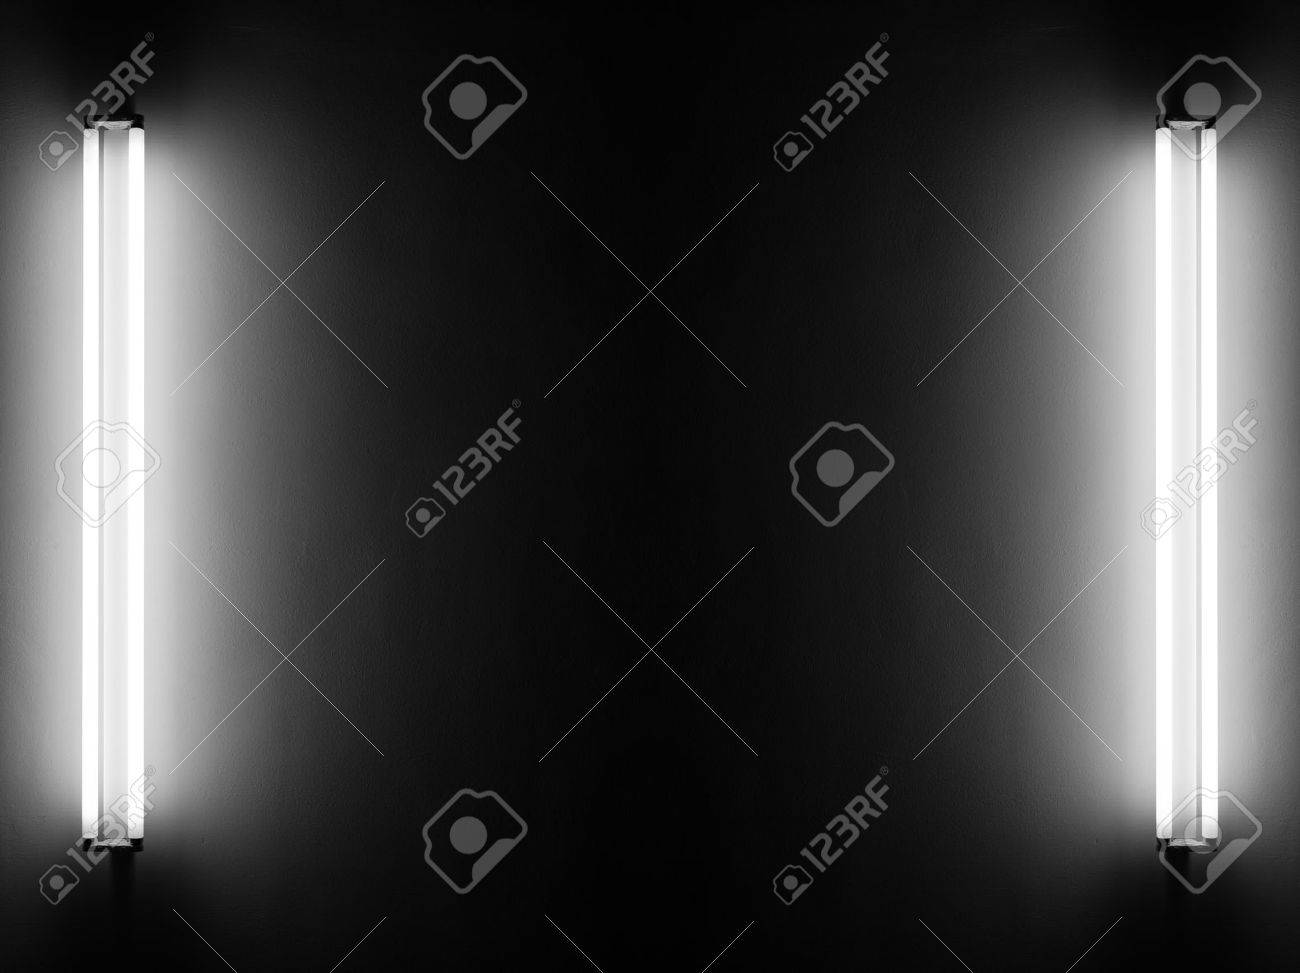 Fluorescent light tubes on the wall Stock Photo - 30409638